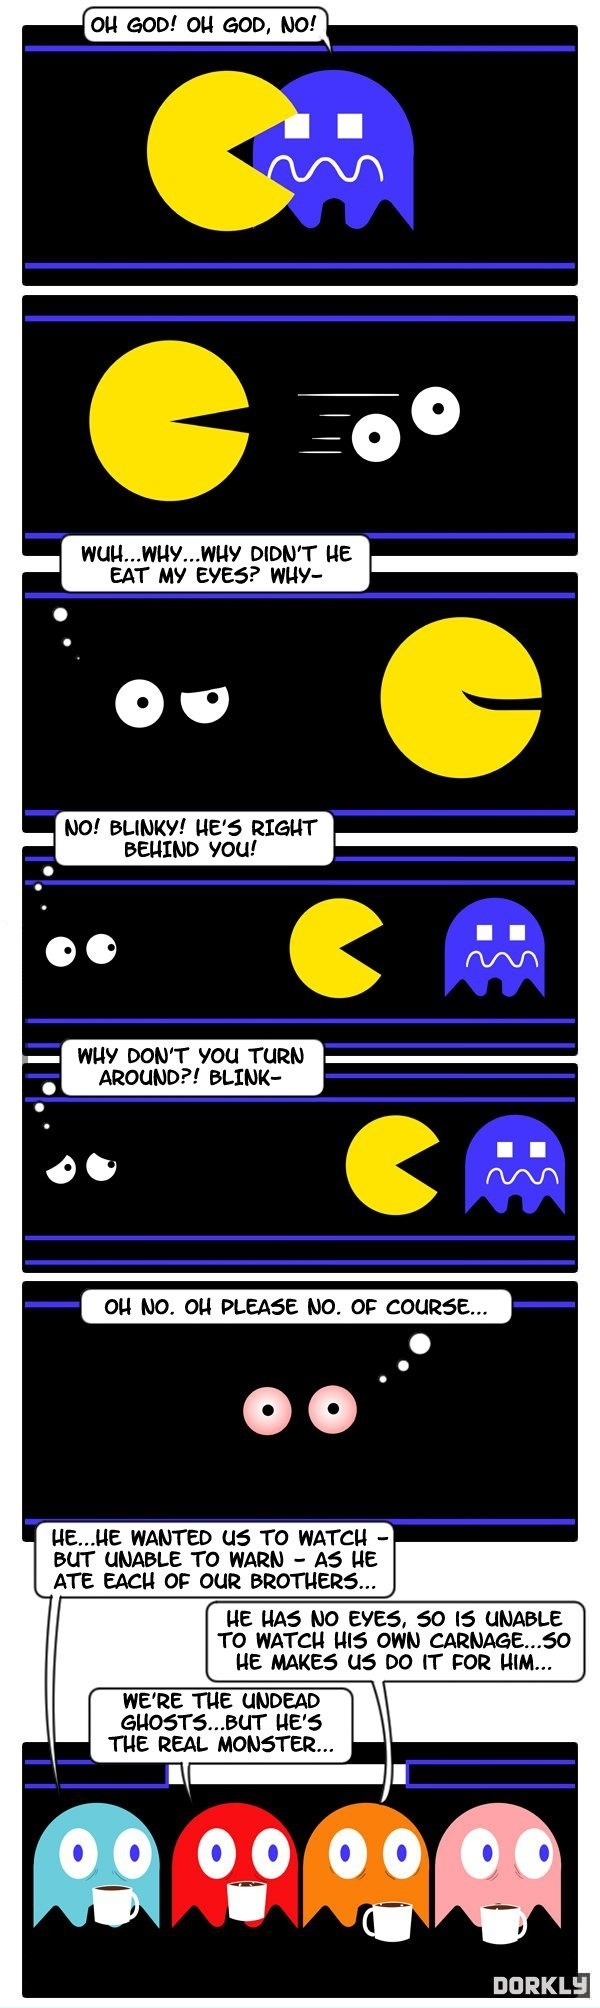 Pacman is horrifying